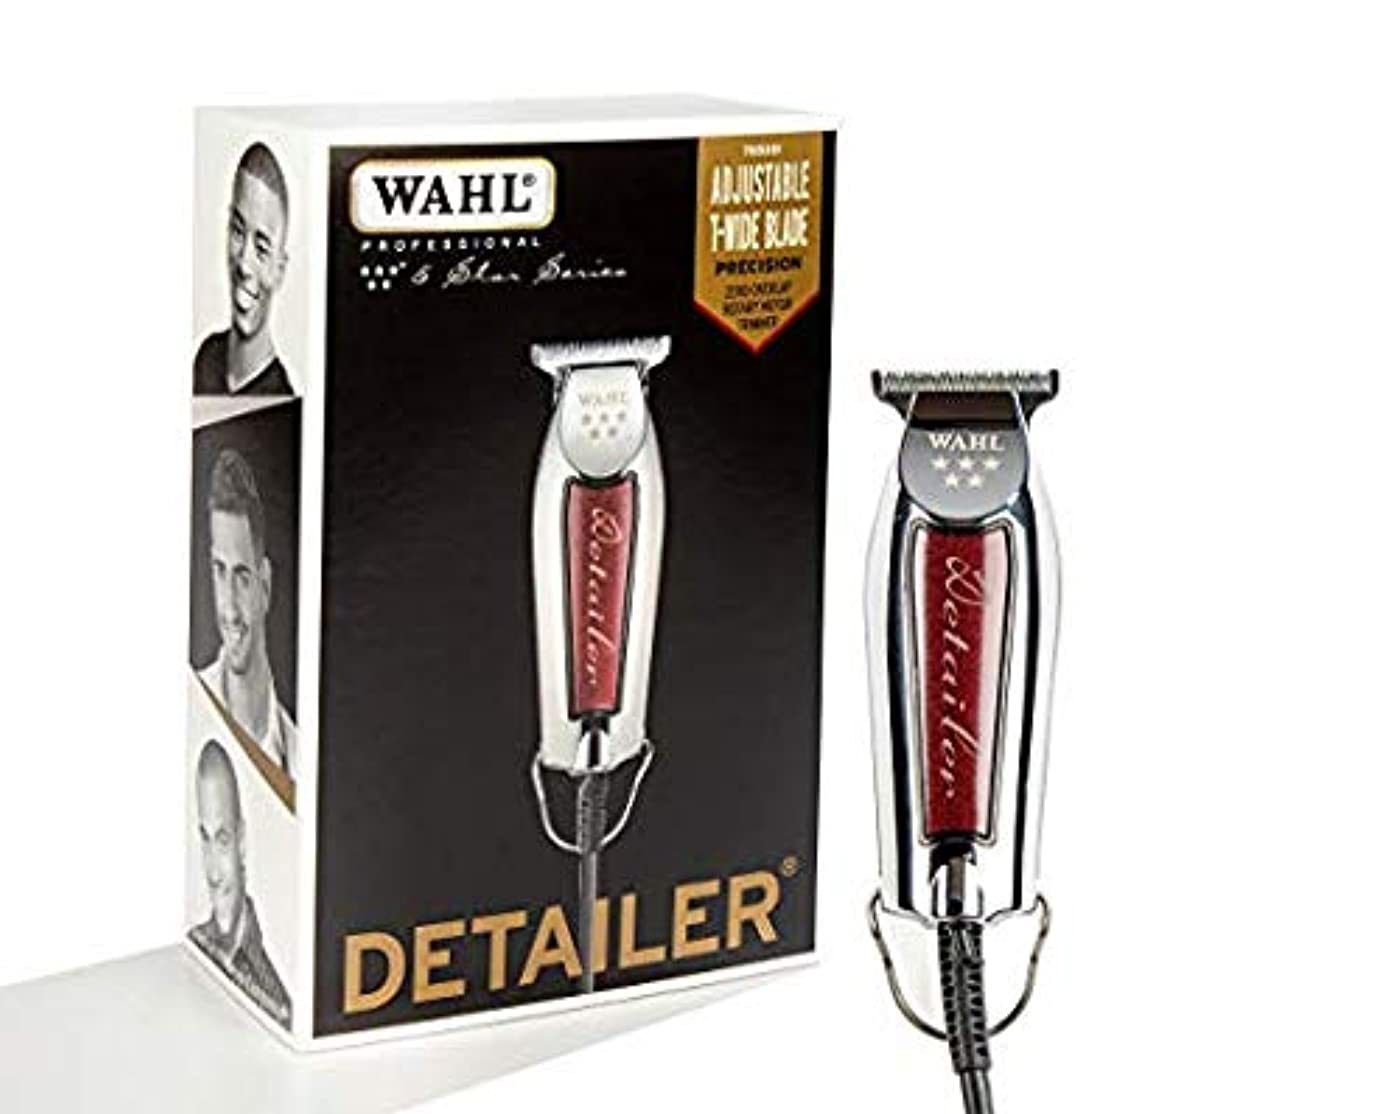 悲しいことにフリルエリート[Wahl ] [Professional Series Detailer #8081 - With Adjustable T-Blade, 3 Trimming Guides (1/16 inch - 1/4 inch...